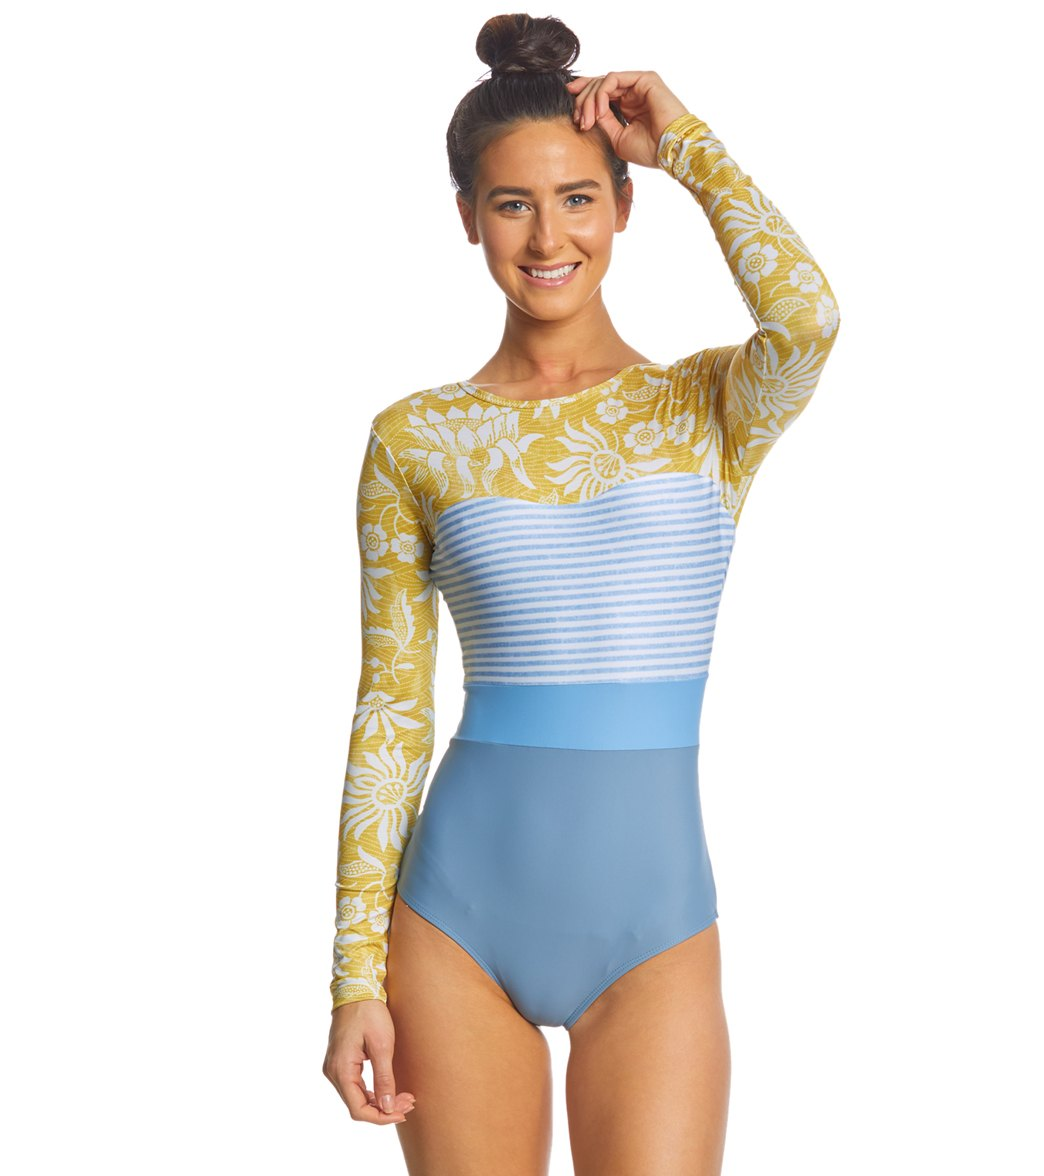 c20f29f0d9 Seea Fiori Hermosa One Piece Swimsuit at SwimOutlet.com - Free Shipping